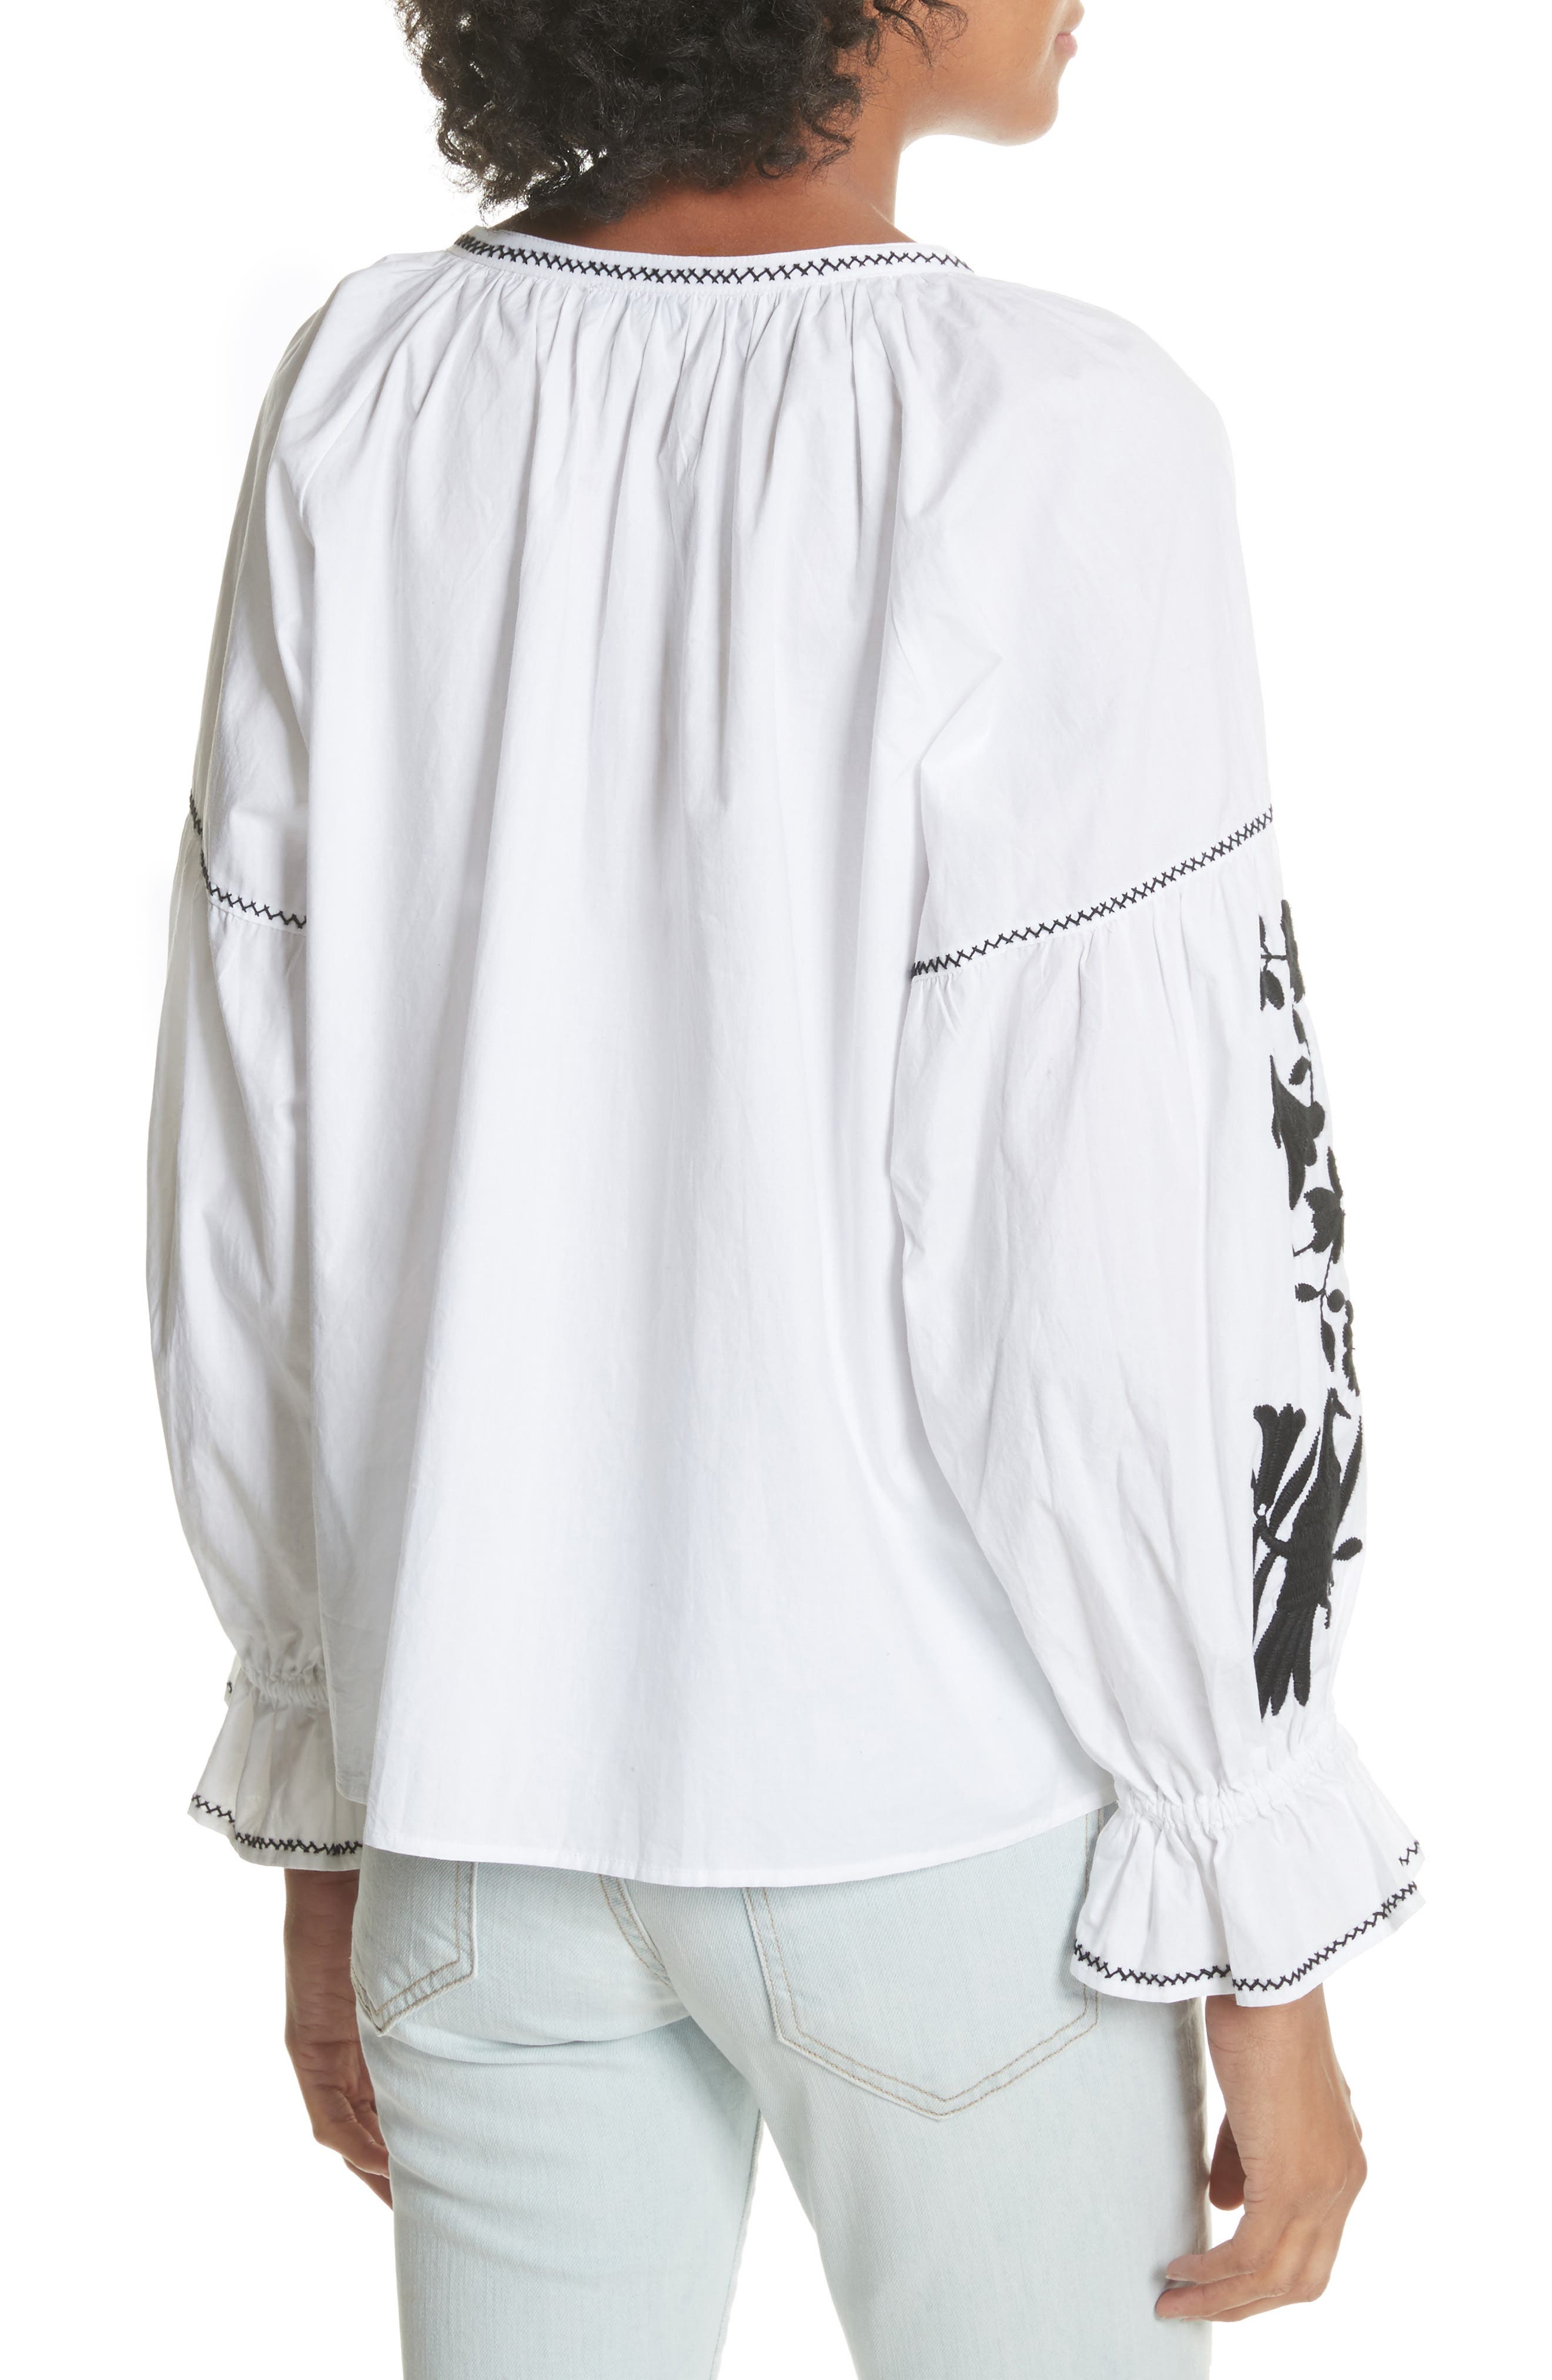 Cleavanta Embroidered Peasant Blouse,                             Alternate thumbnail 2, color,                             Clean White Caviar